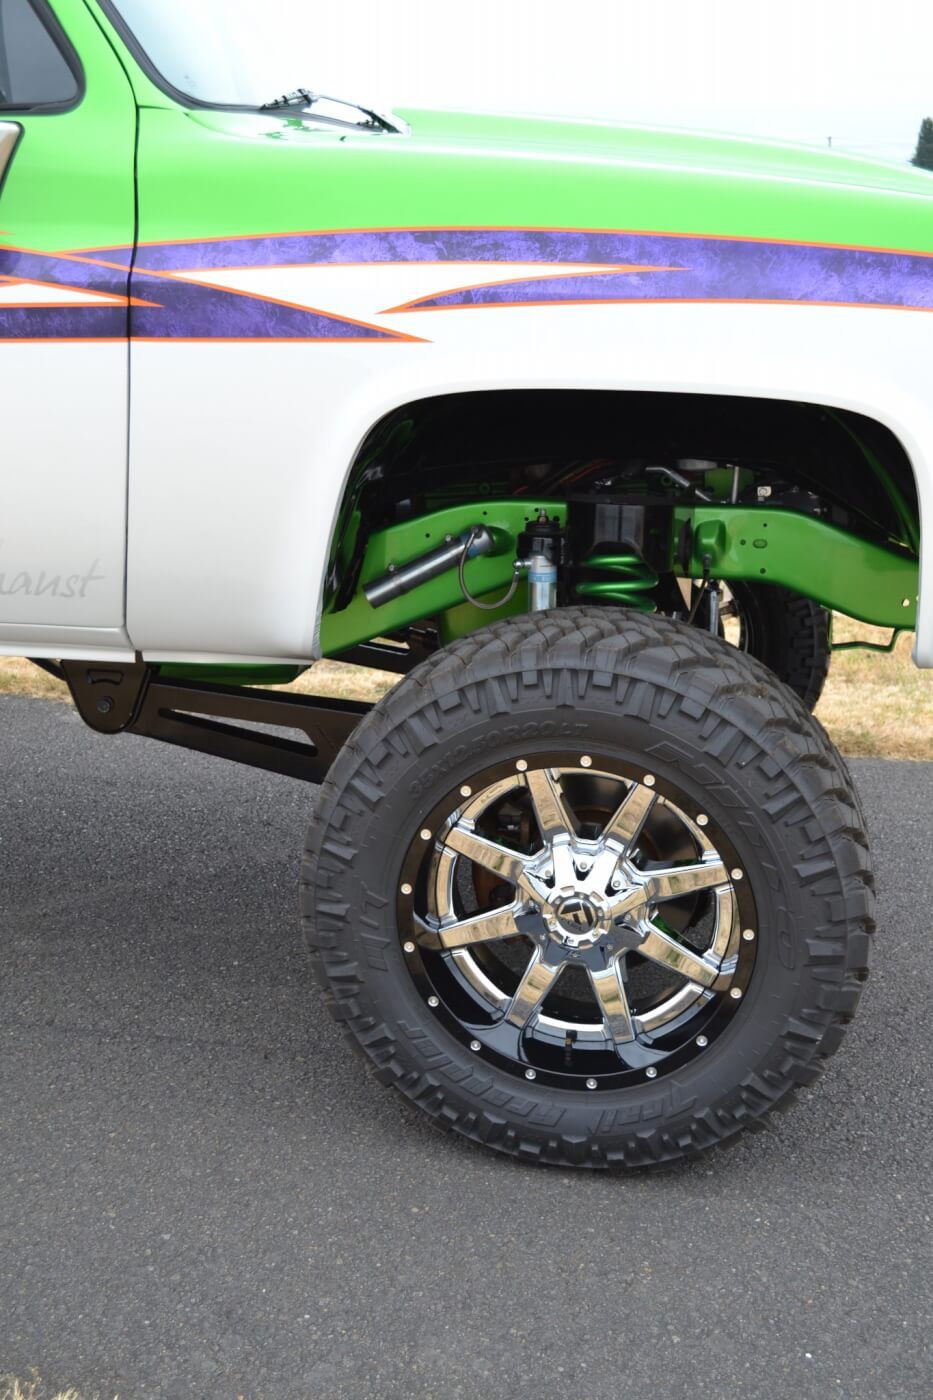 One of the coolest aspects of Bennett's conversion truck is the radius arm front suspension, which Bennett designed himself. Using custom coil buckets and radius arms, an '05 Super Duty front axle was mounted underneath the Chevy, taking it from two-wheel drive to four-wheel drive.